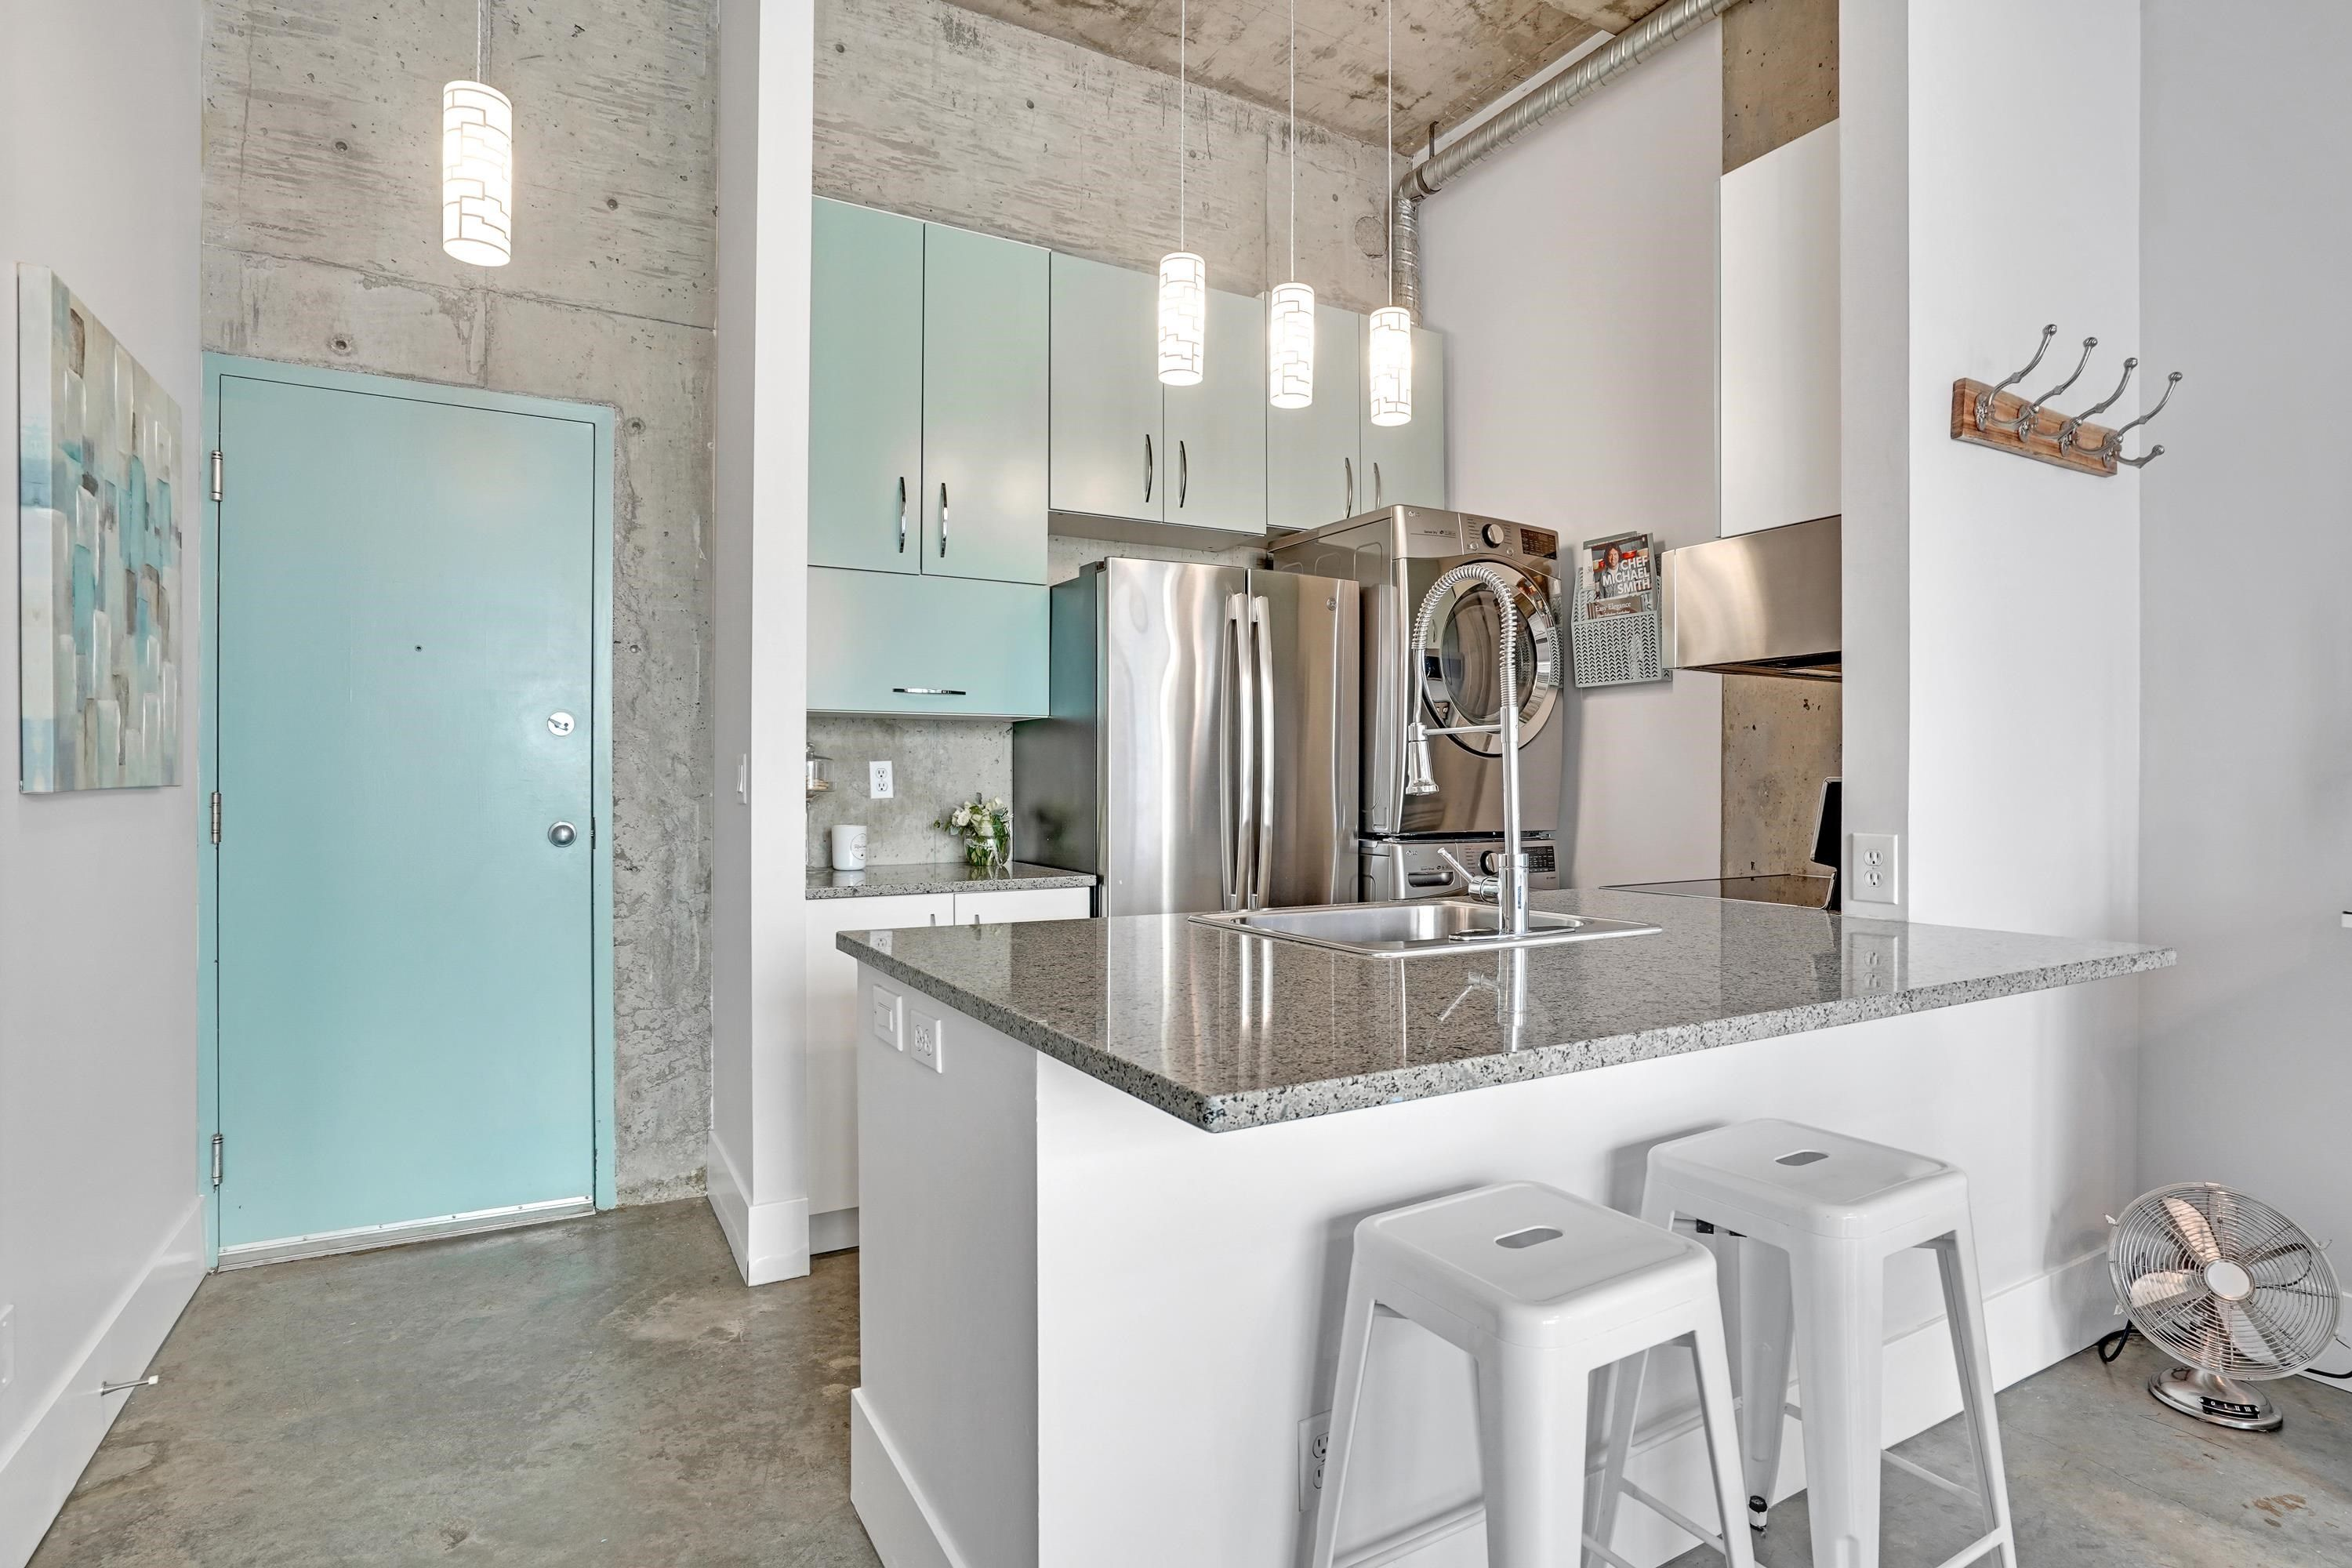 """Main Photo: 204 228 E 4TH Avenue in Vancouver: Mount Pleasant VE Condo for sale in """"THE WATERSHED"""" (Vancouver East)  : MLS®# R2619949"""